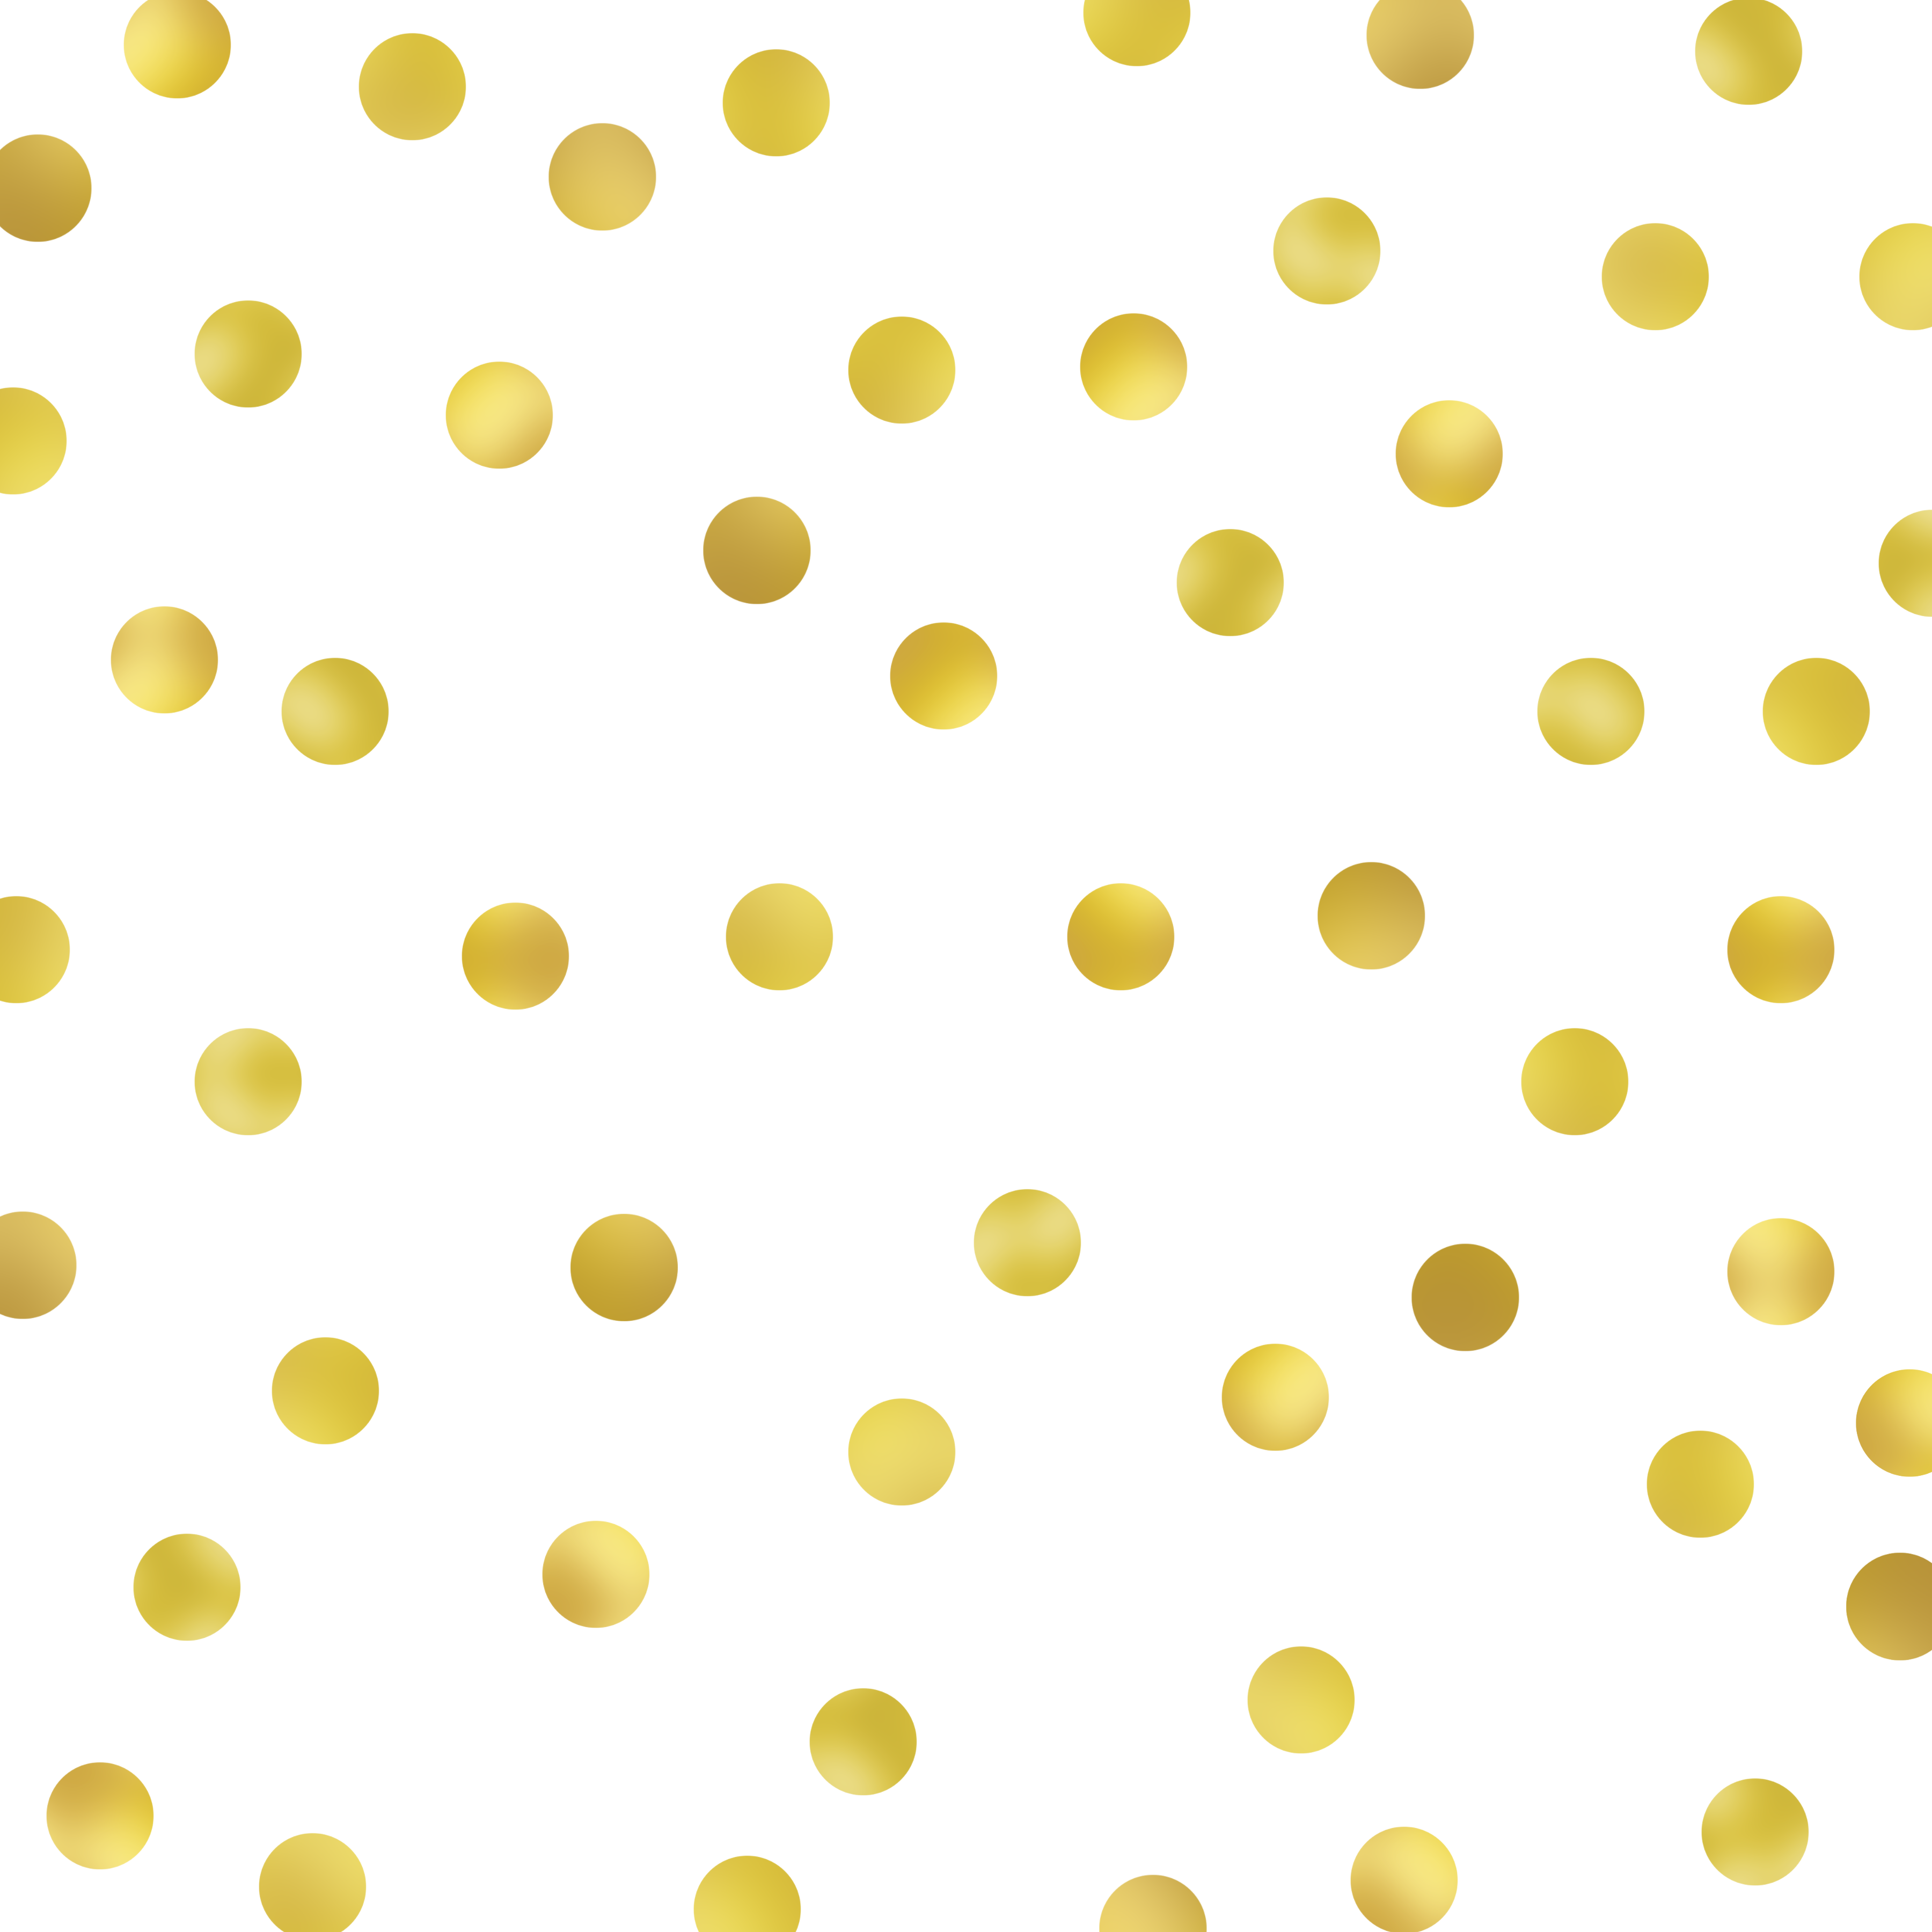 Gold polka dots clipart images gallery for free download.